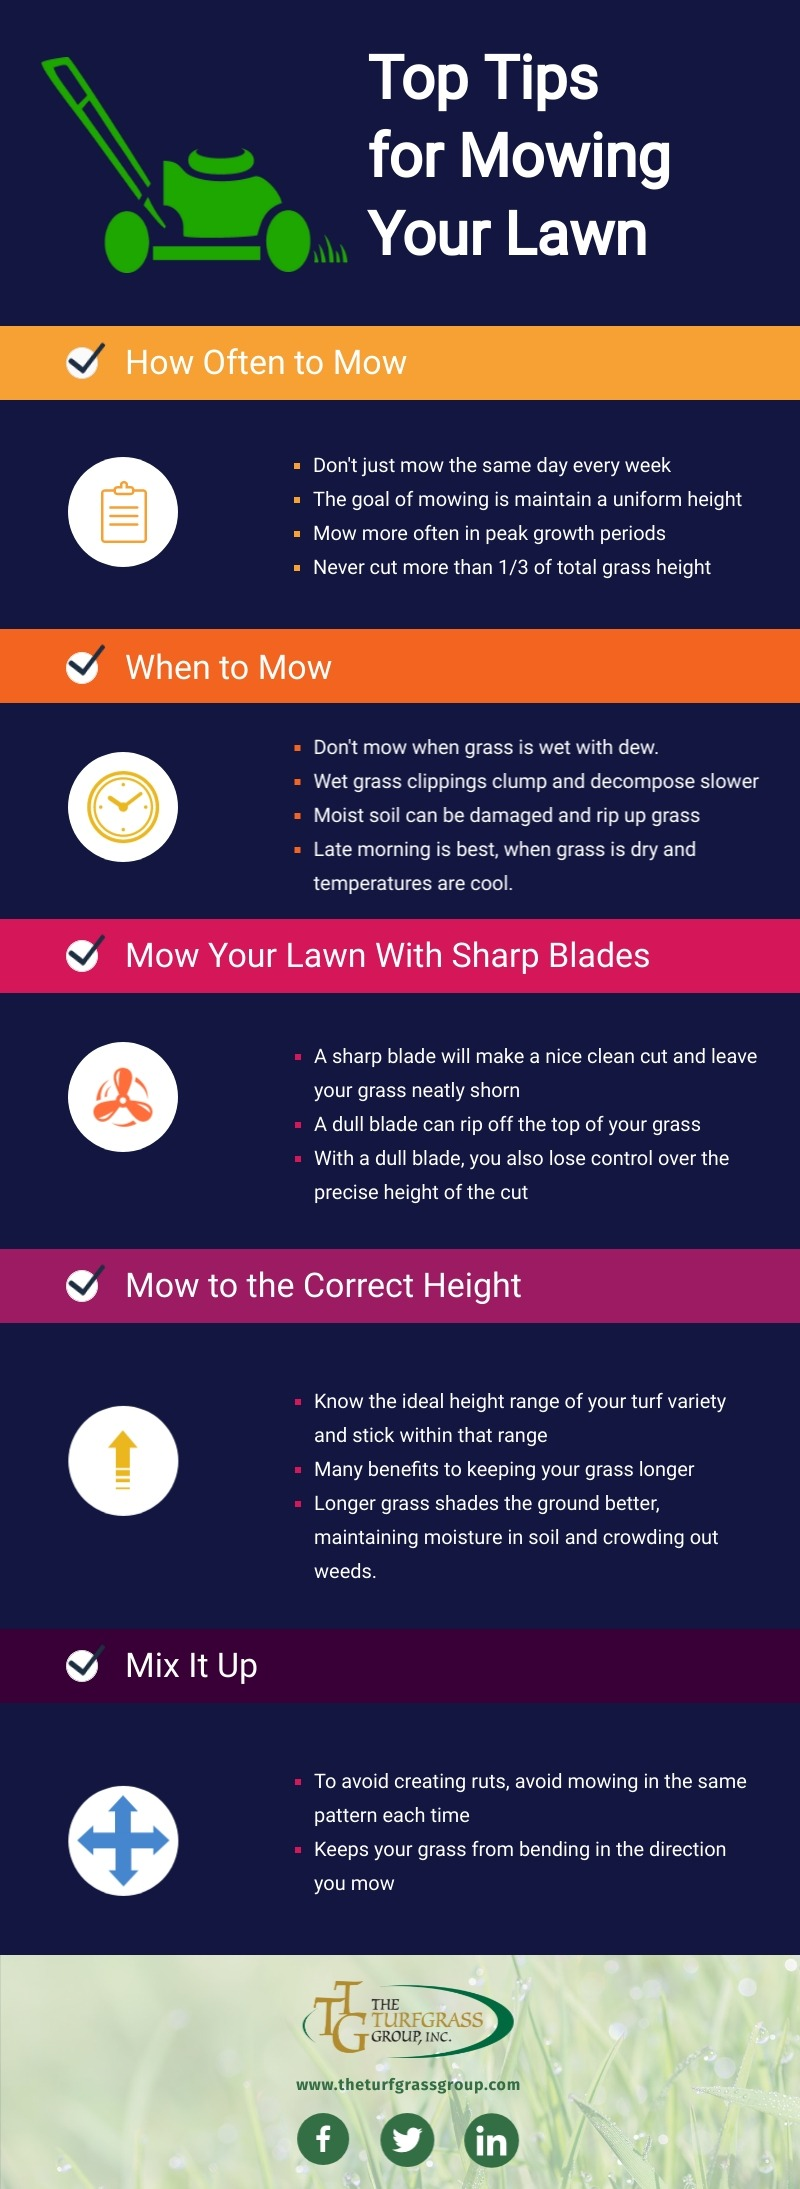 Our Top Tips for Mowing Your Lawn [infographic]